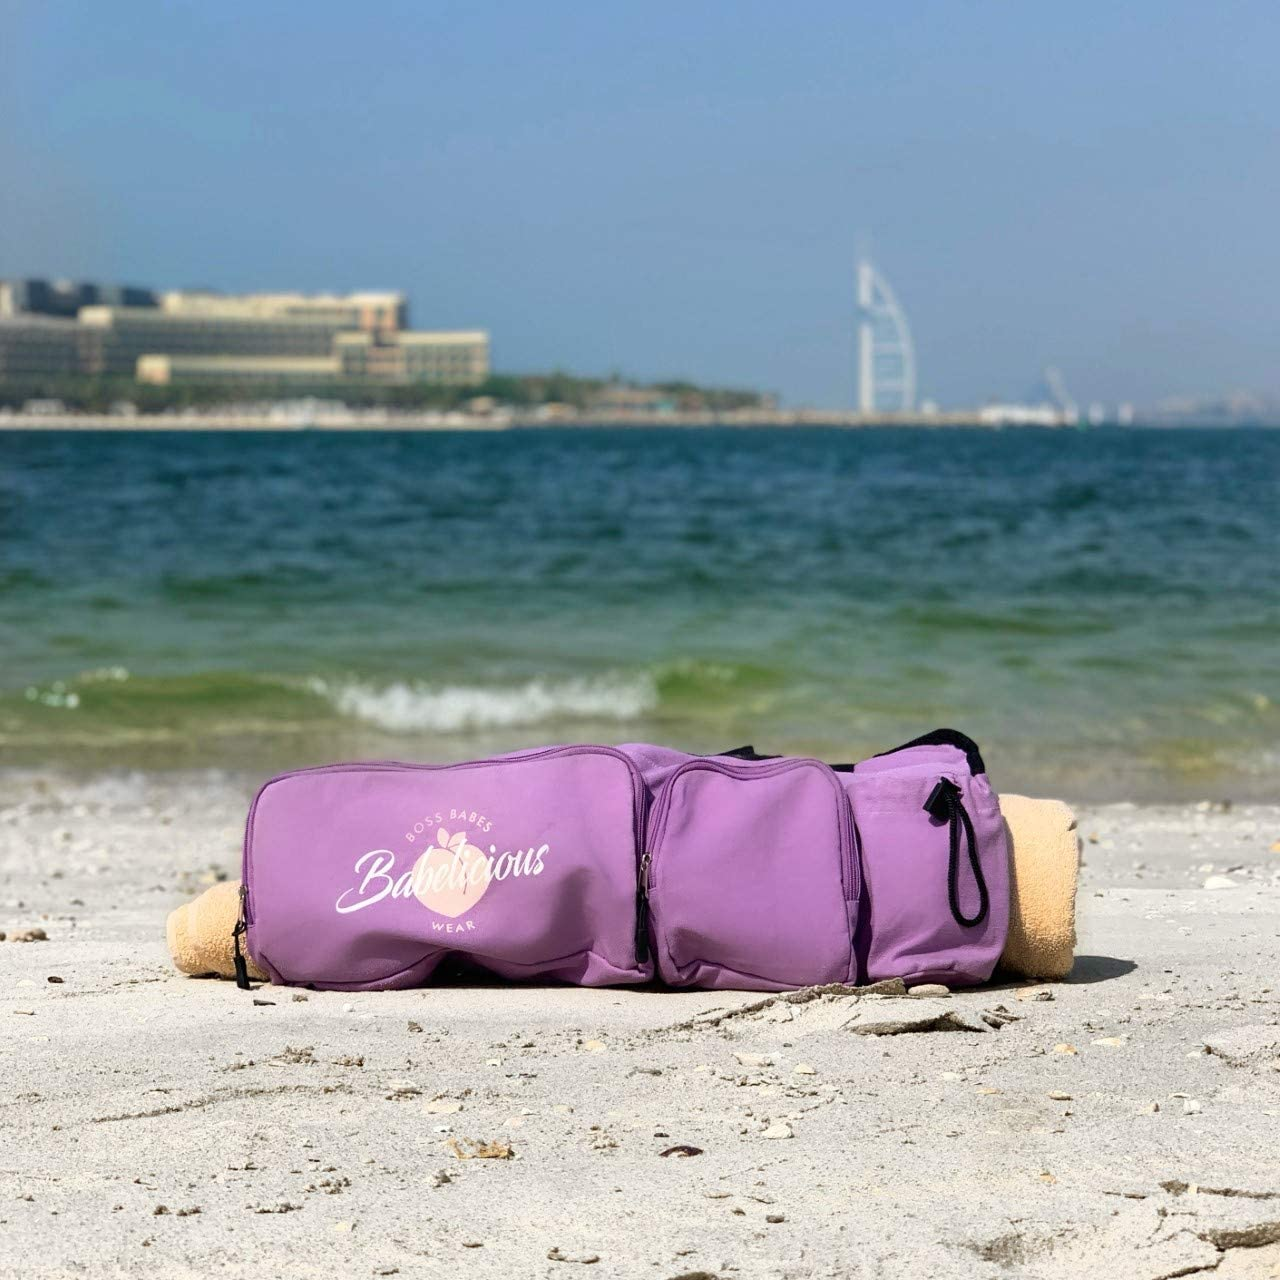 Babelicious All in one Yoga Gym Towel Beach Bag with Pockets Fit Most Mats Size Pilates Gym Compartments for Clothes and Accessories